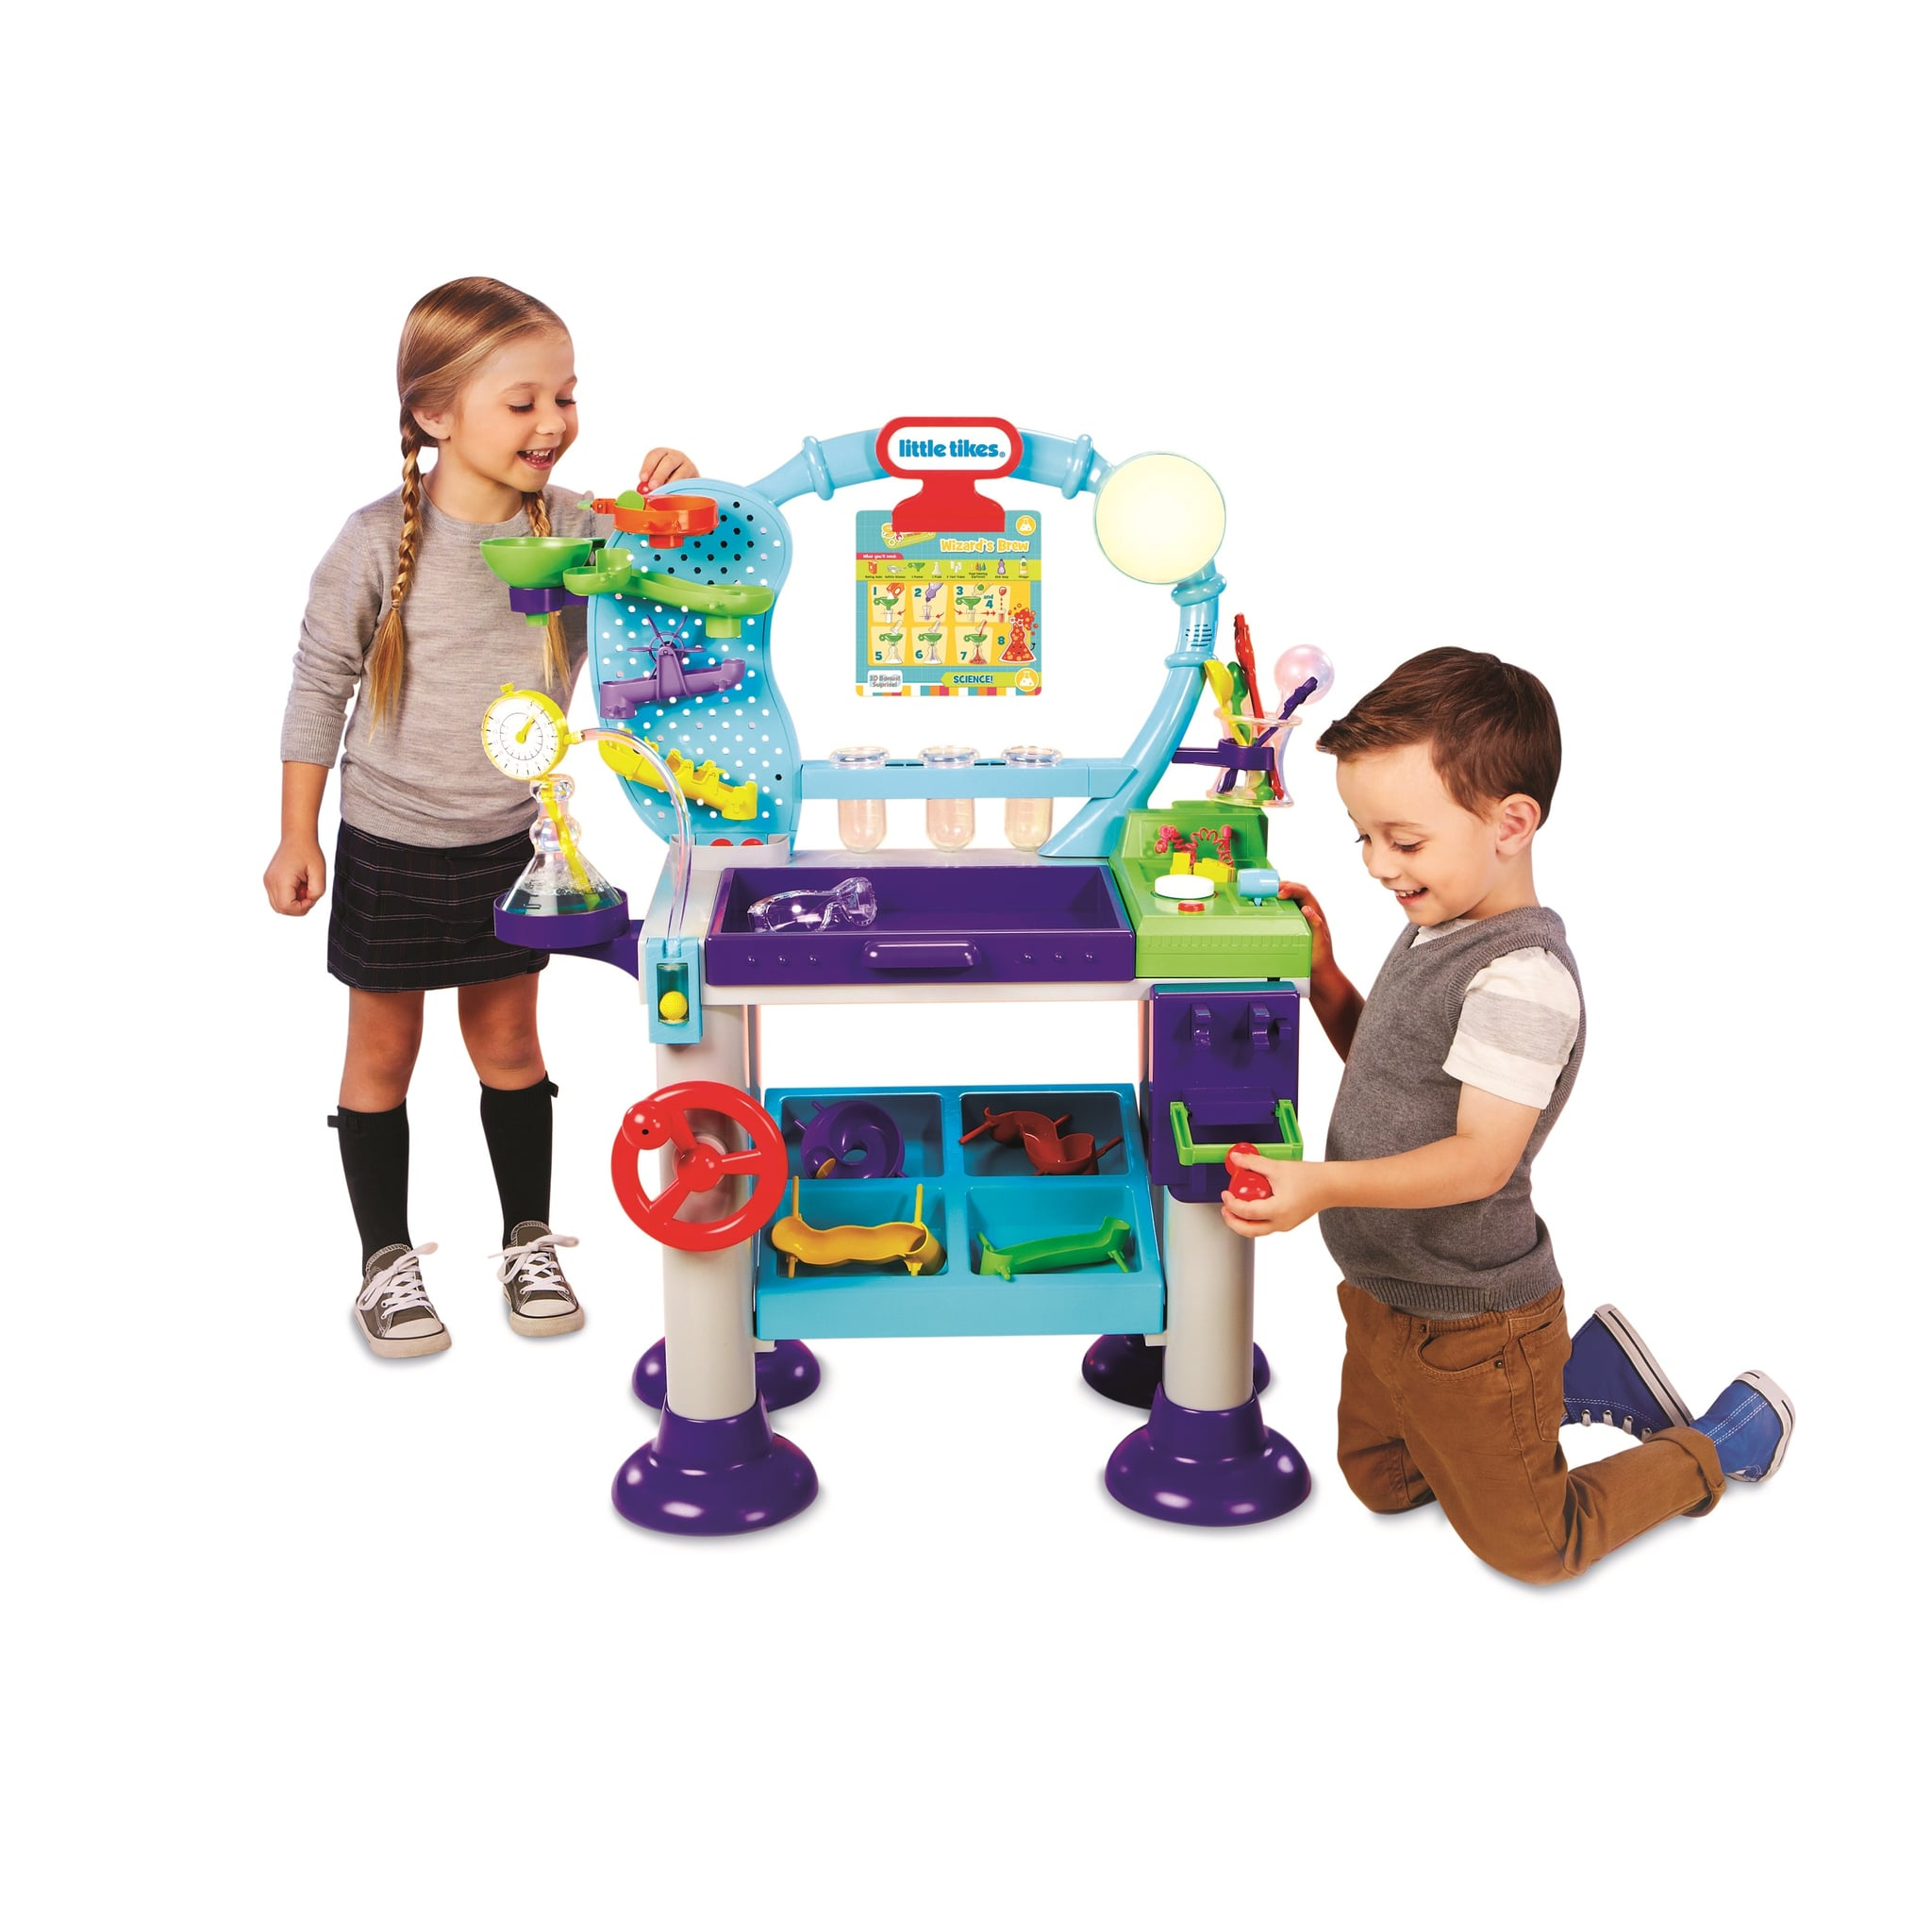 Christmas Gifts For 4 Year Old Boys 2021 The 50 Best Toys Gift Ideas For 4 Year Olds 2021 Guide Popsugar Family